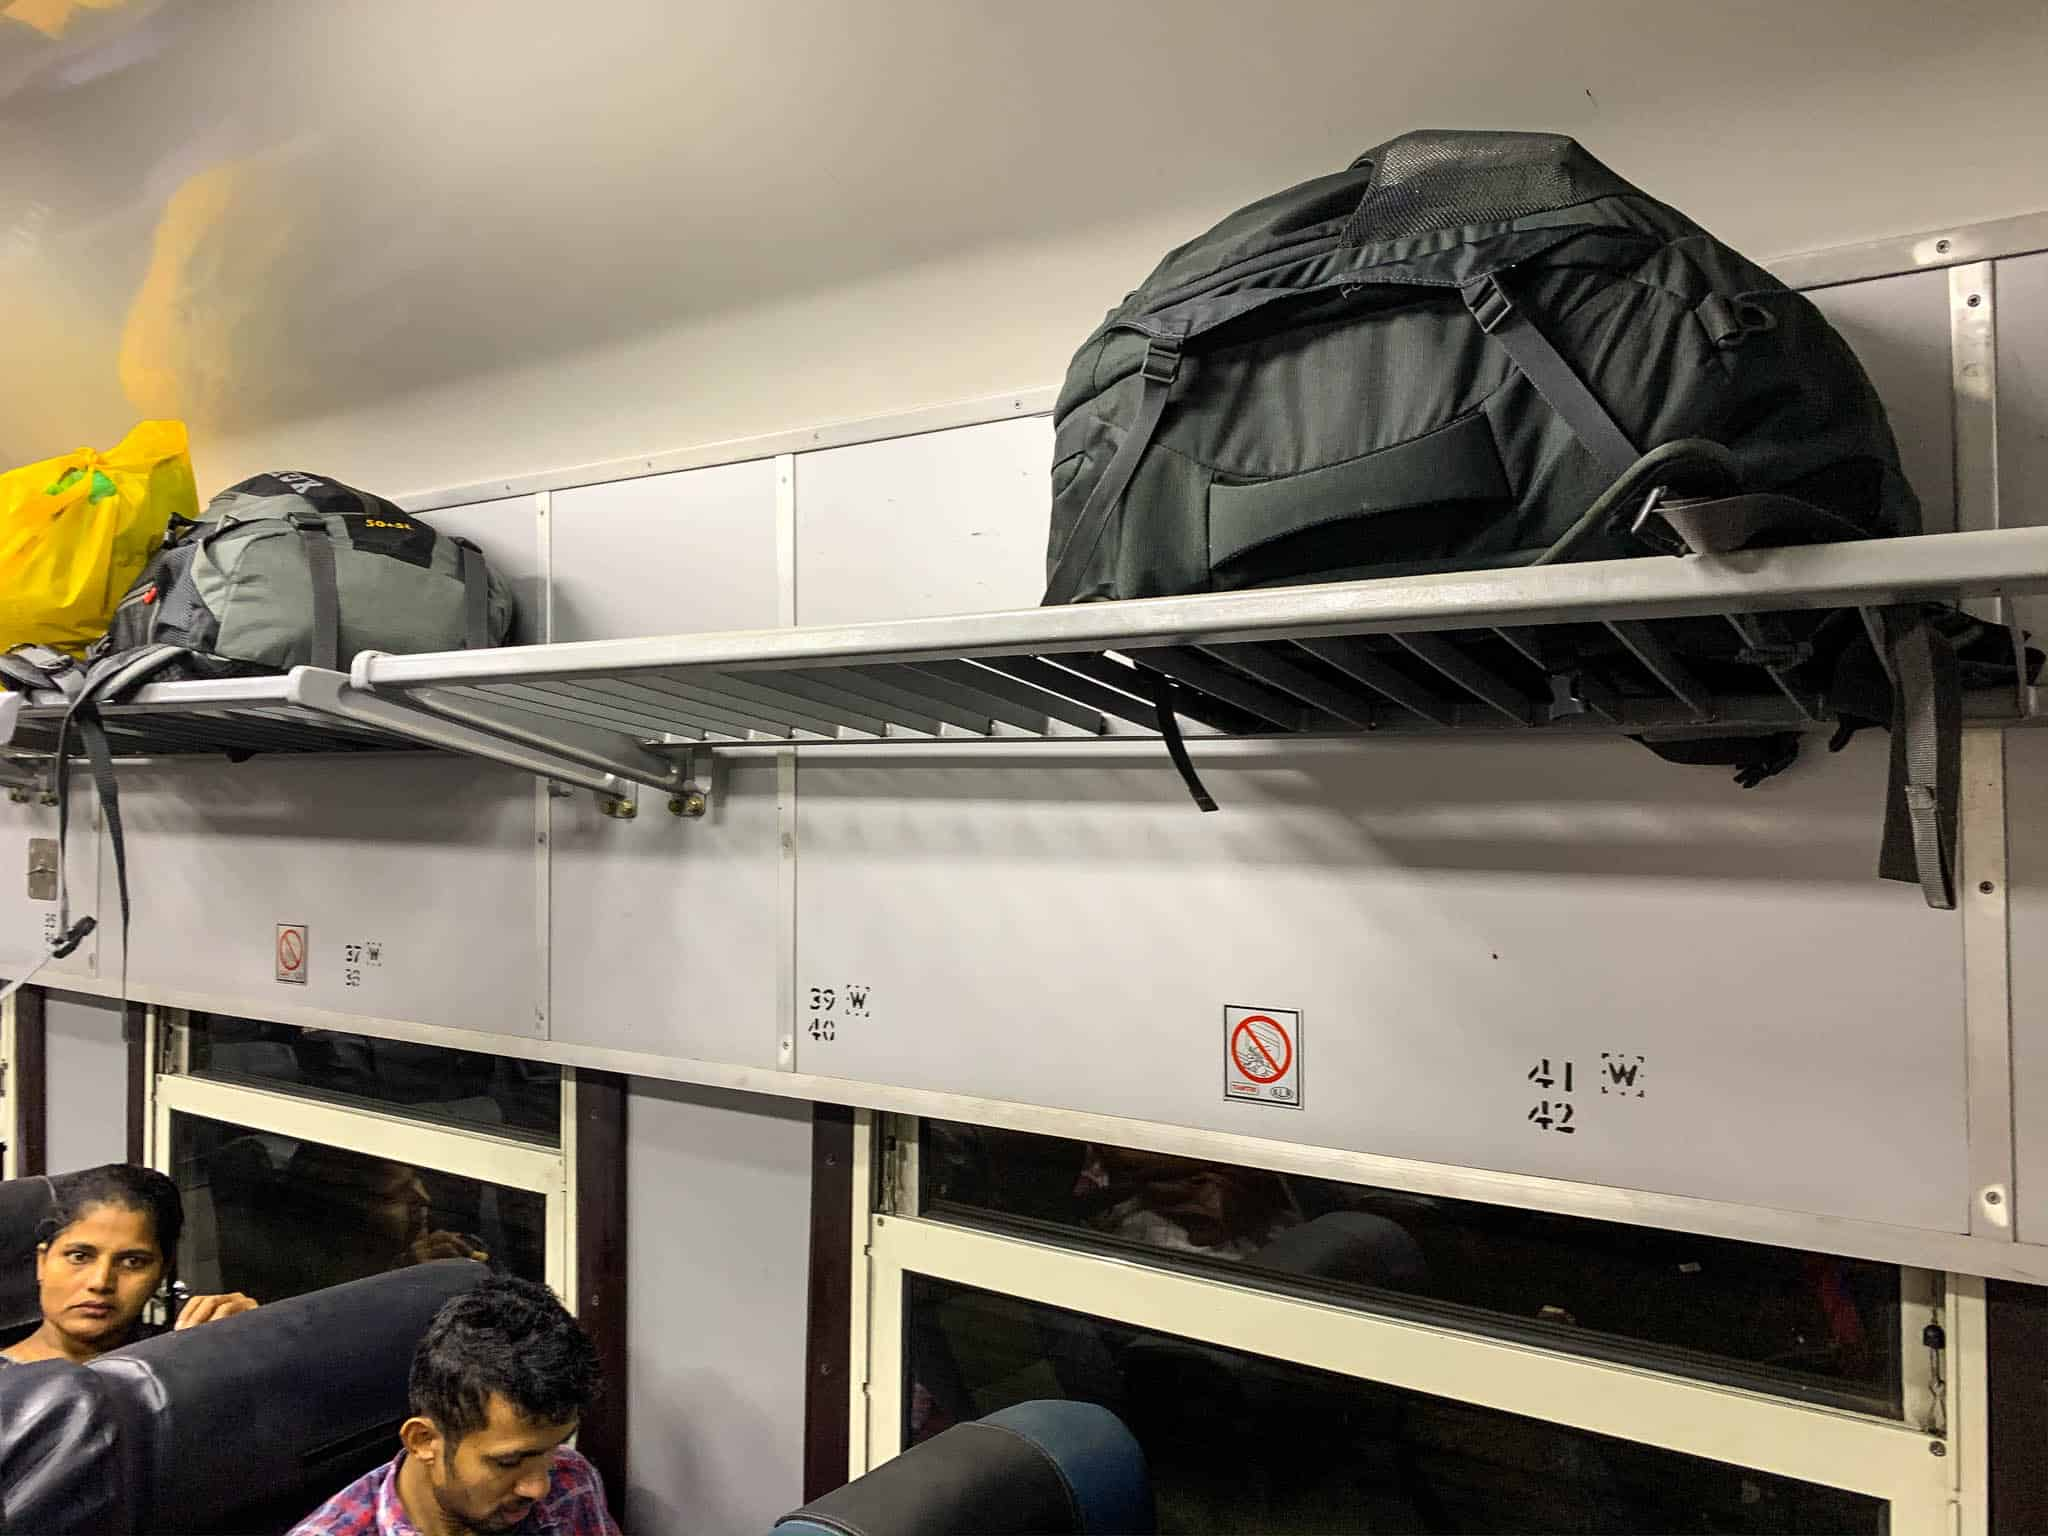 luggage racks Sri Lanka trains